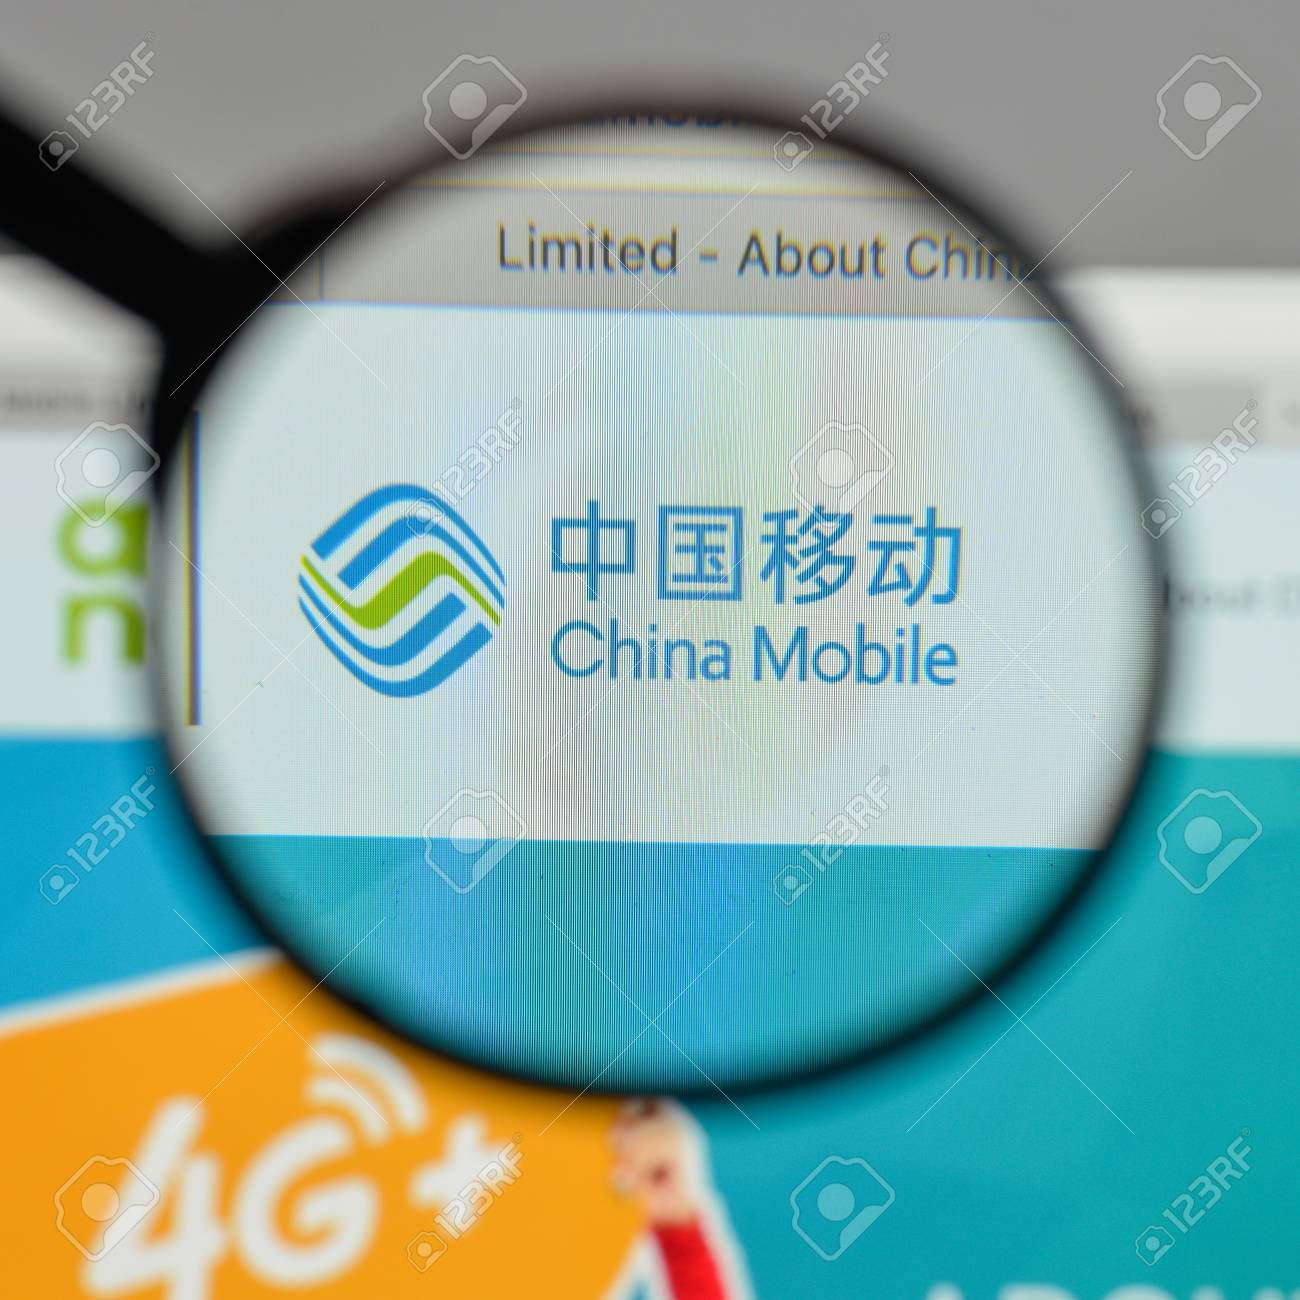 Milan, Italy - August 10, 2017: China Mobile logo on the website